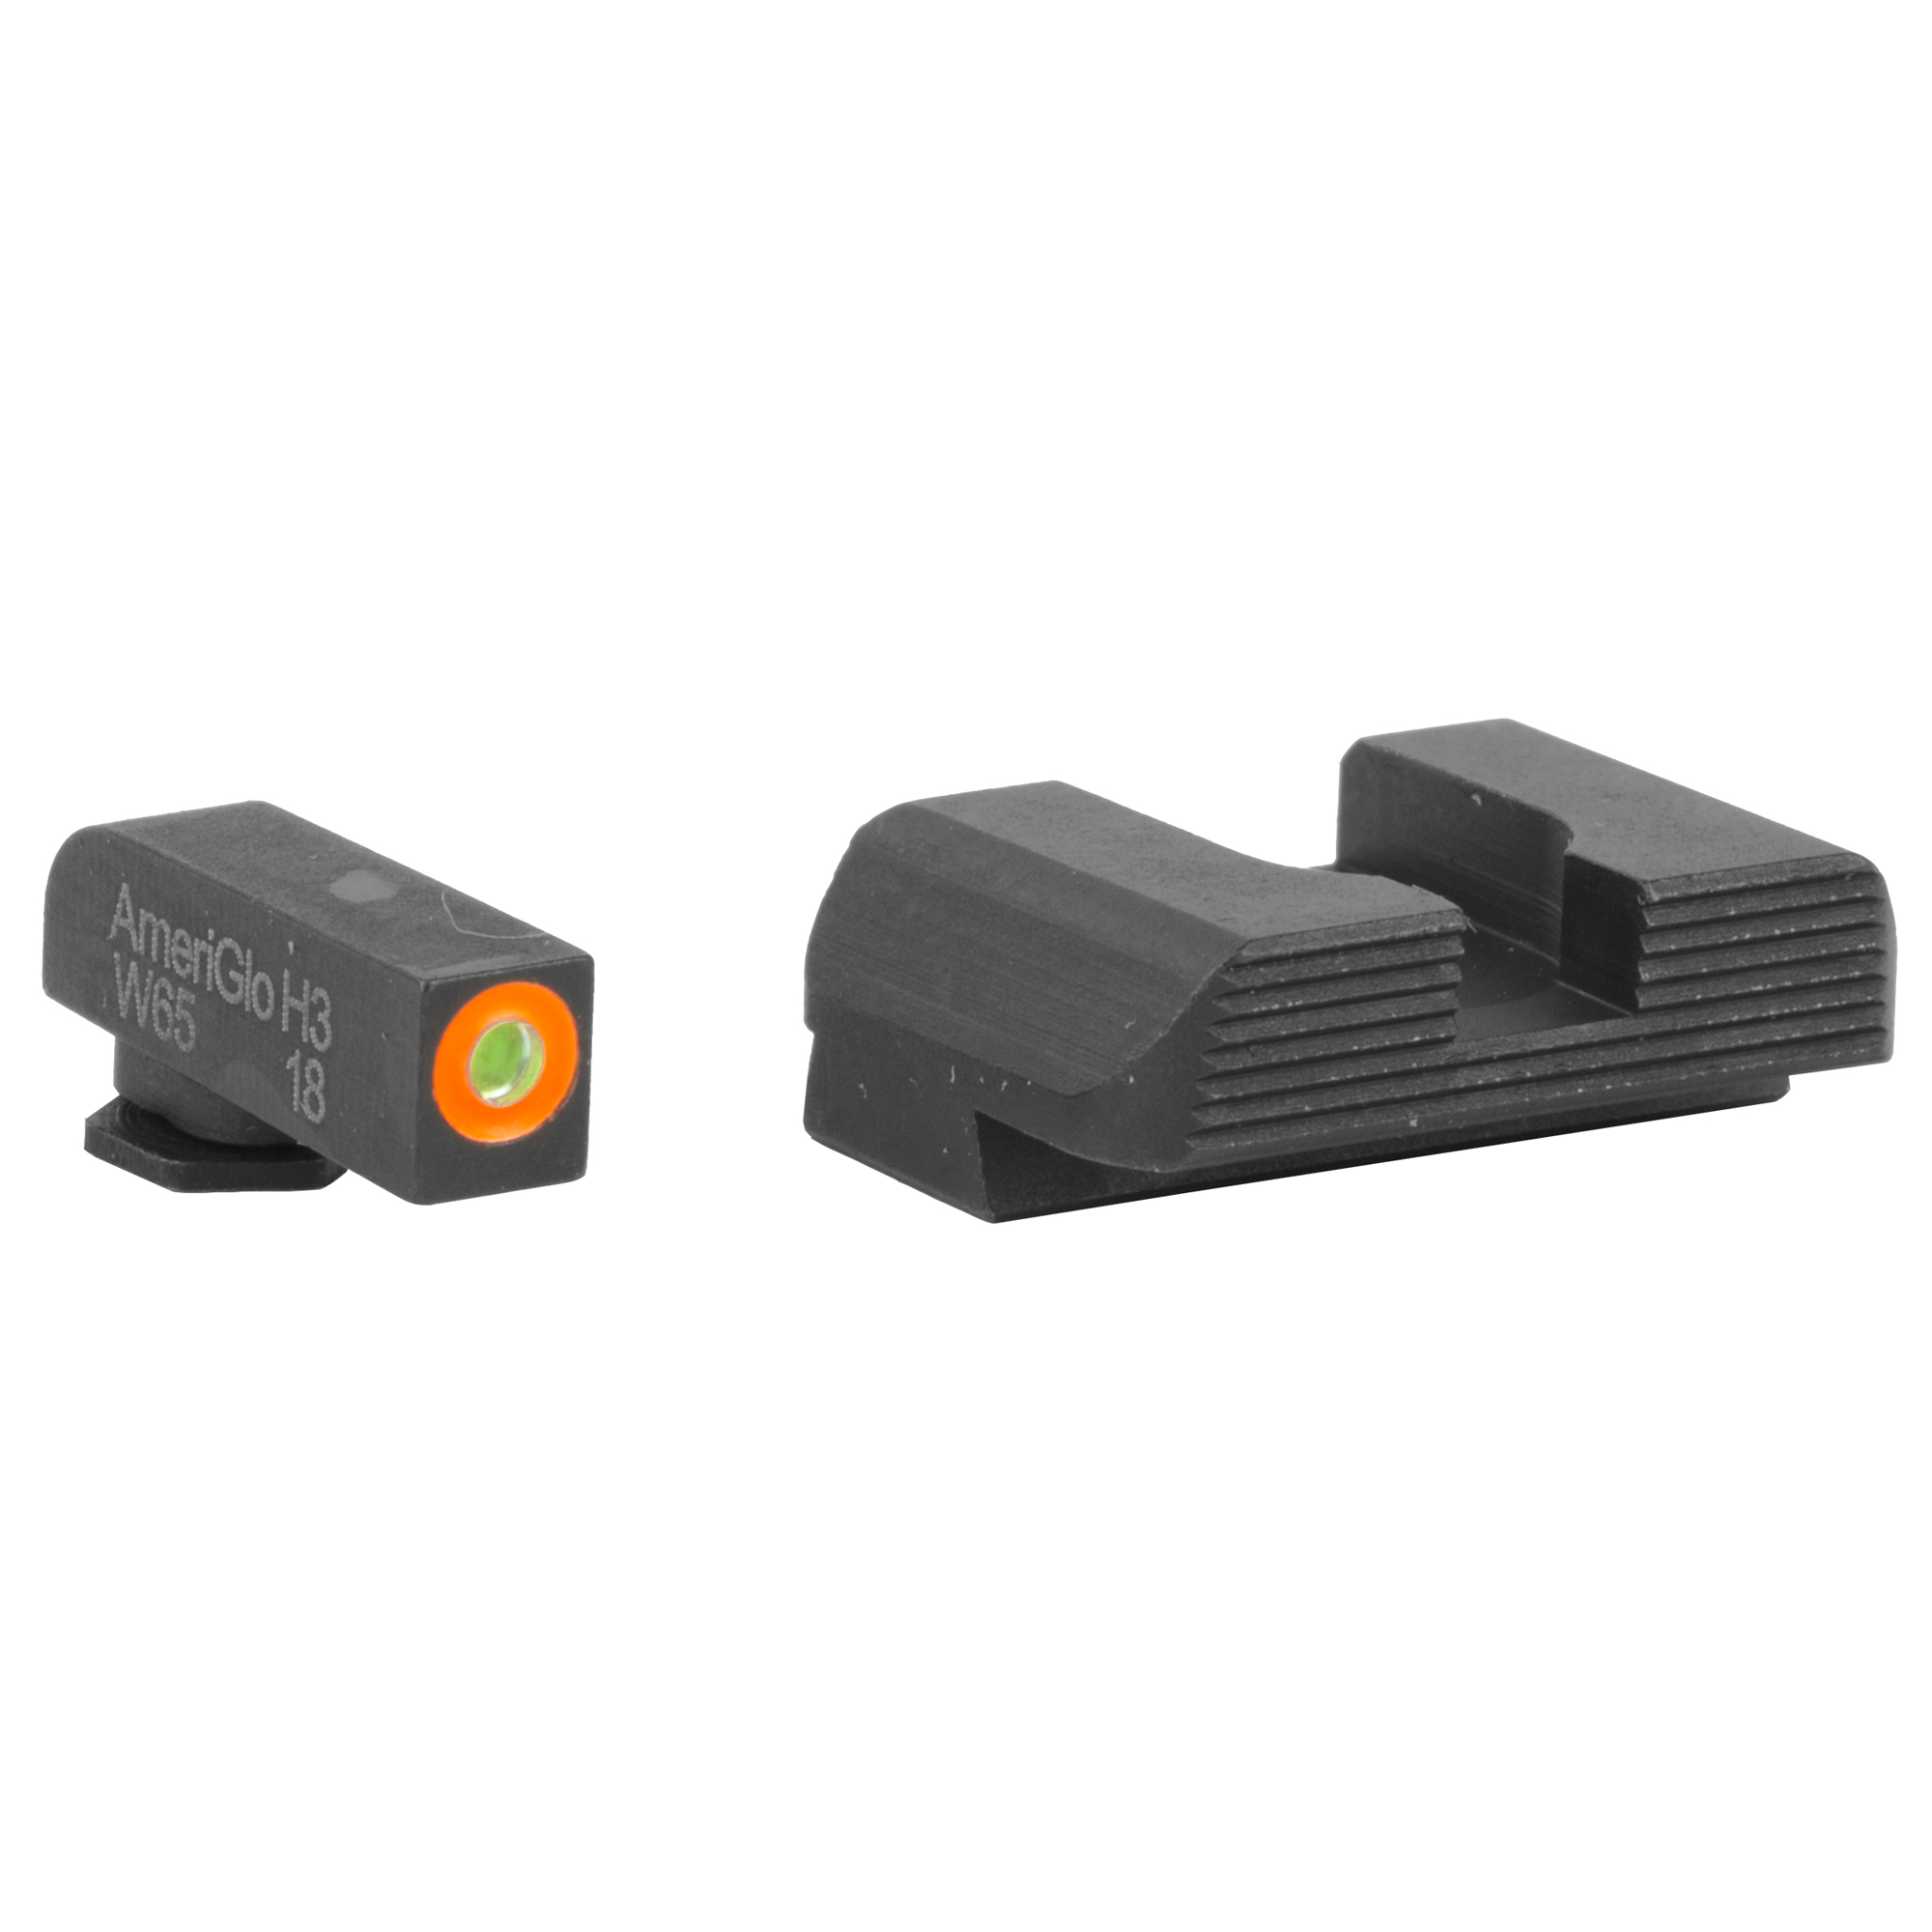 """Employing a glare-reducing black serrated rear sight paired with a tritium ProGlo front sight"""" the Hackathorn Sights are designed for quicker front sight acquisition and maximized concentration on the front sight blade."""